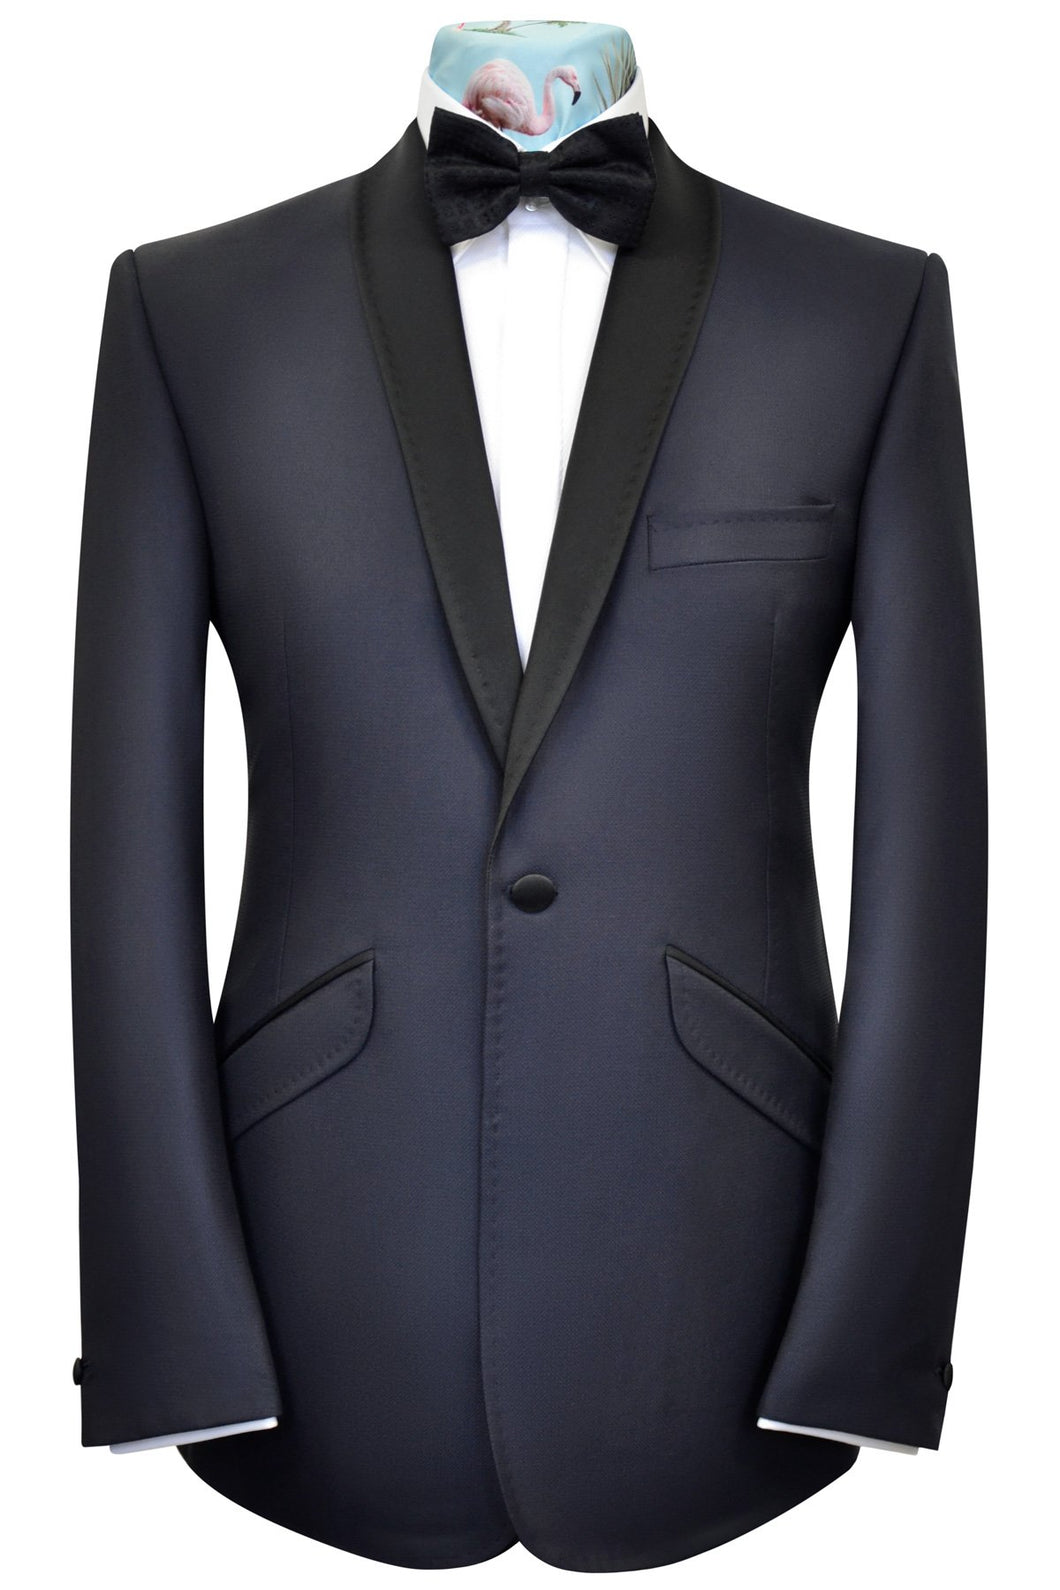 Navy blue shawl collared tuxedo dinner suit featuring a black lining with red piping highlights.